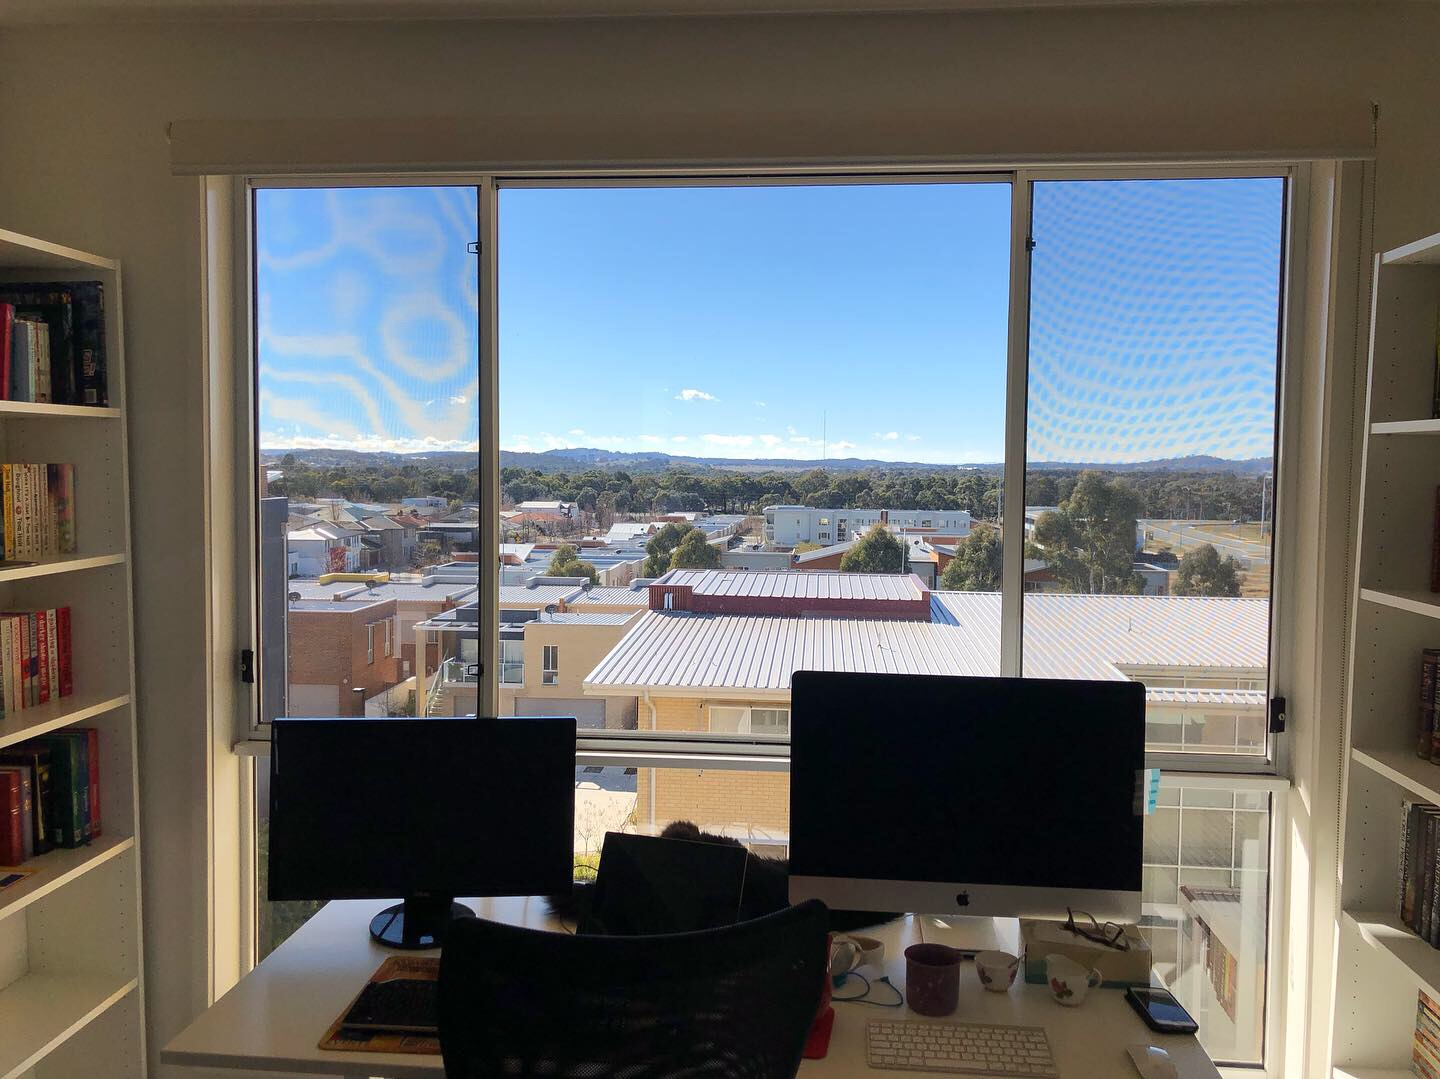 Photo of my desk with the view from the window behind it.